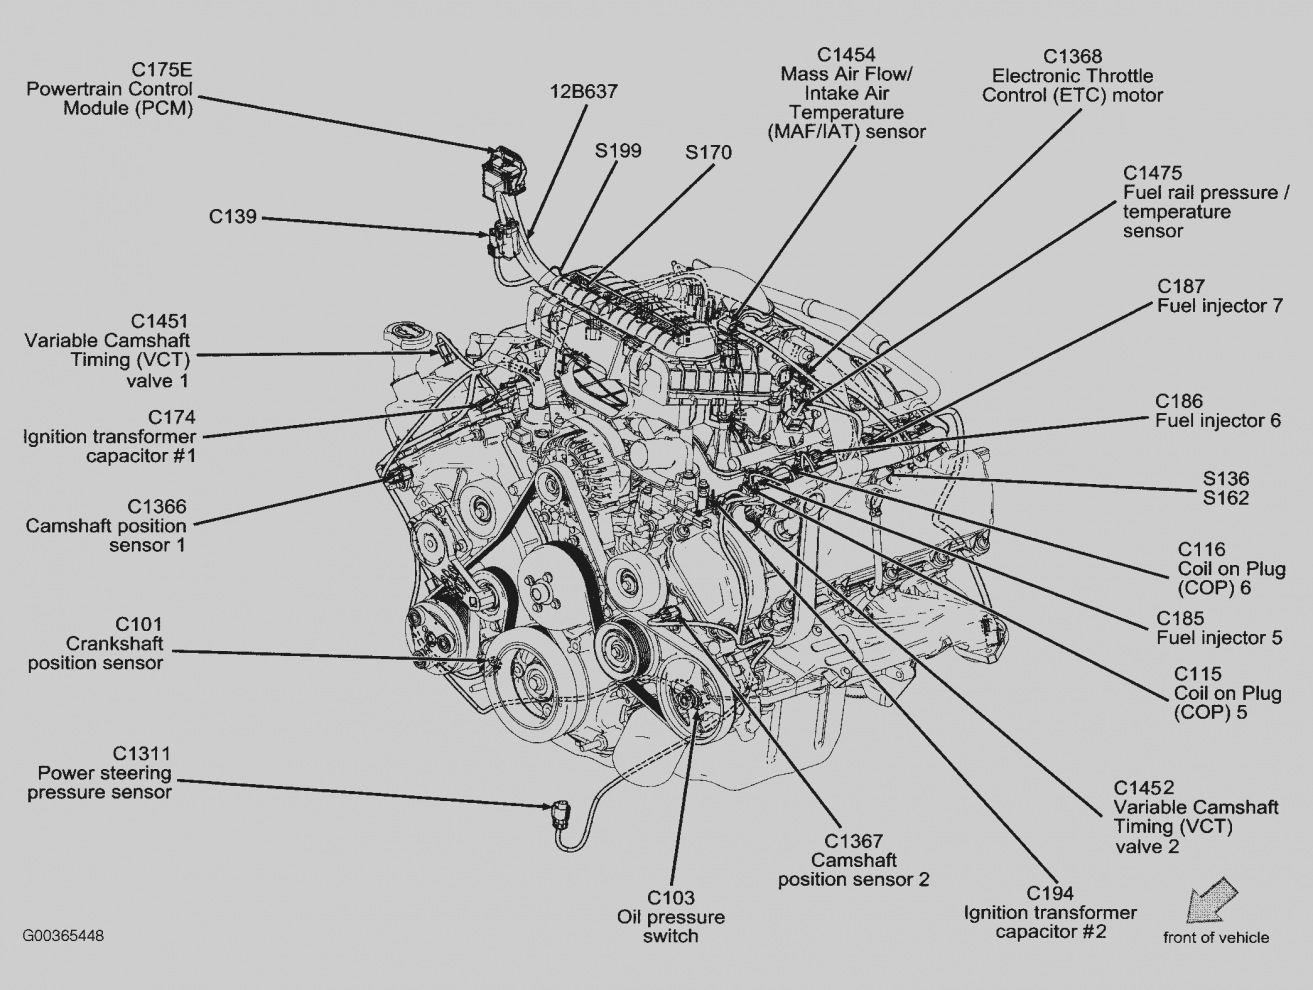 2006 ford f 150 6 cylinder engine diagram wiring diagram list 2006 ford f 150 6 cylinder engine diagram [ 1313 x 990 Pixel ]